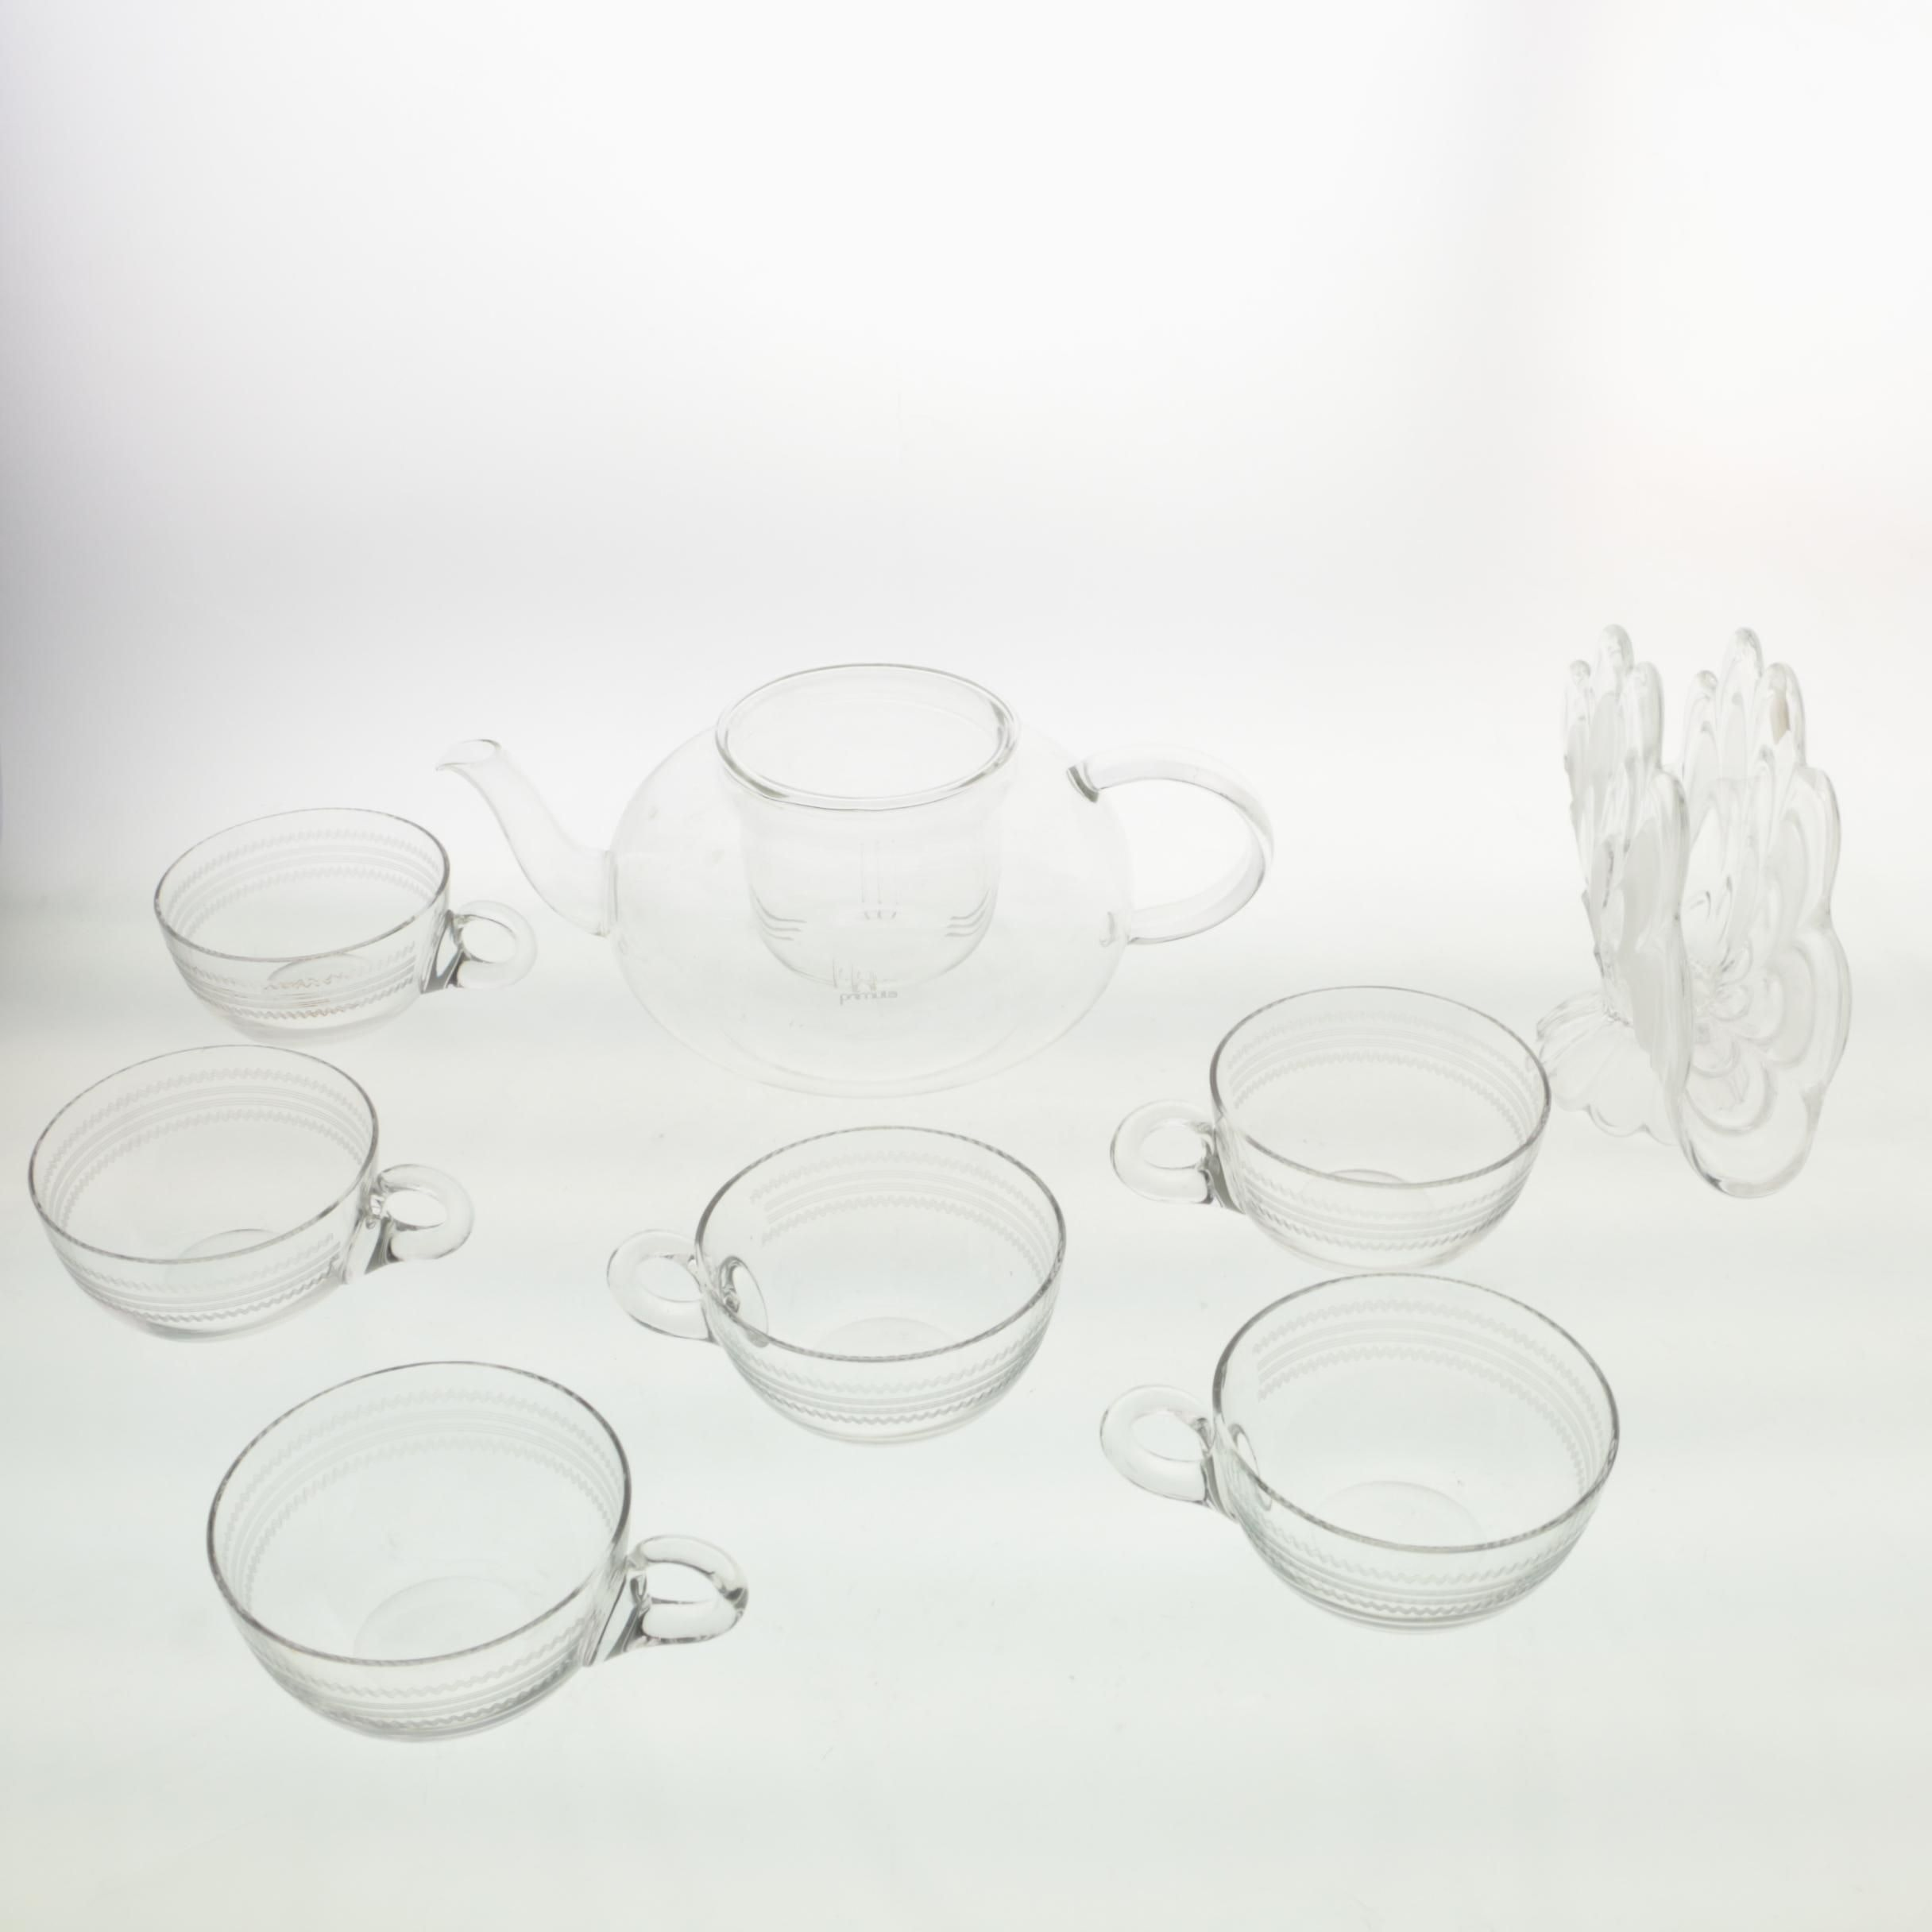 Glass Pedestal Napkin Holder with Cups and Teapot